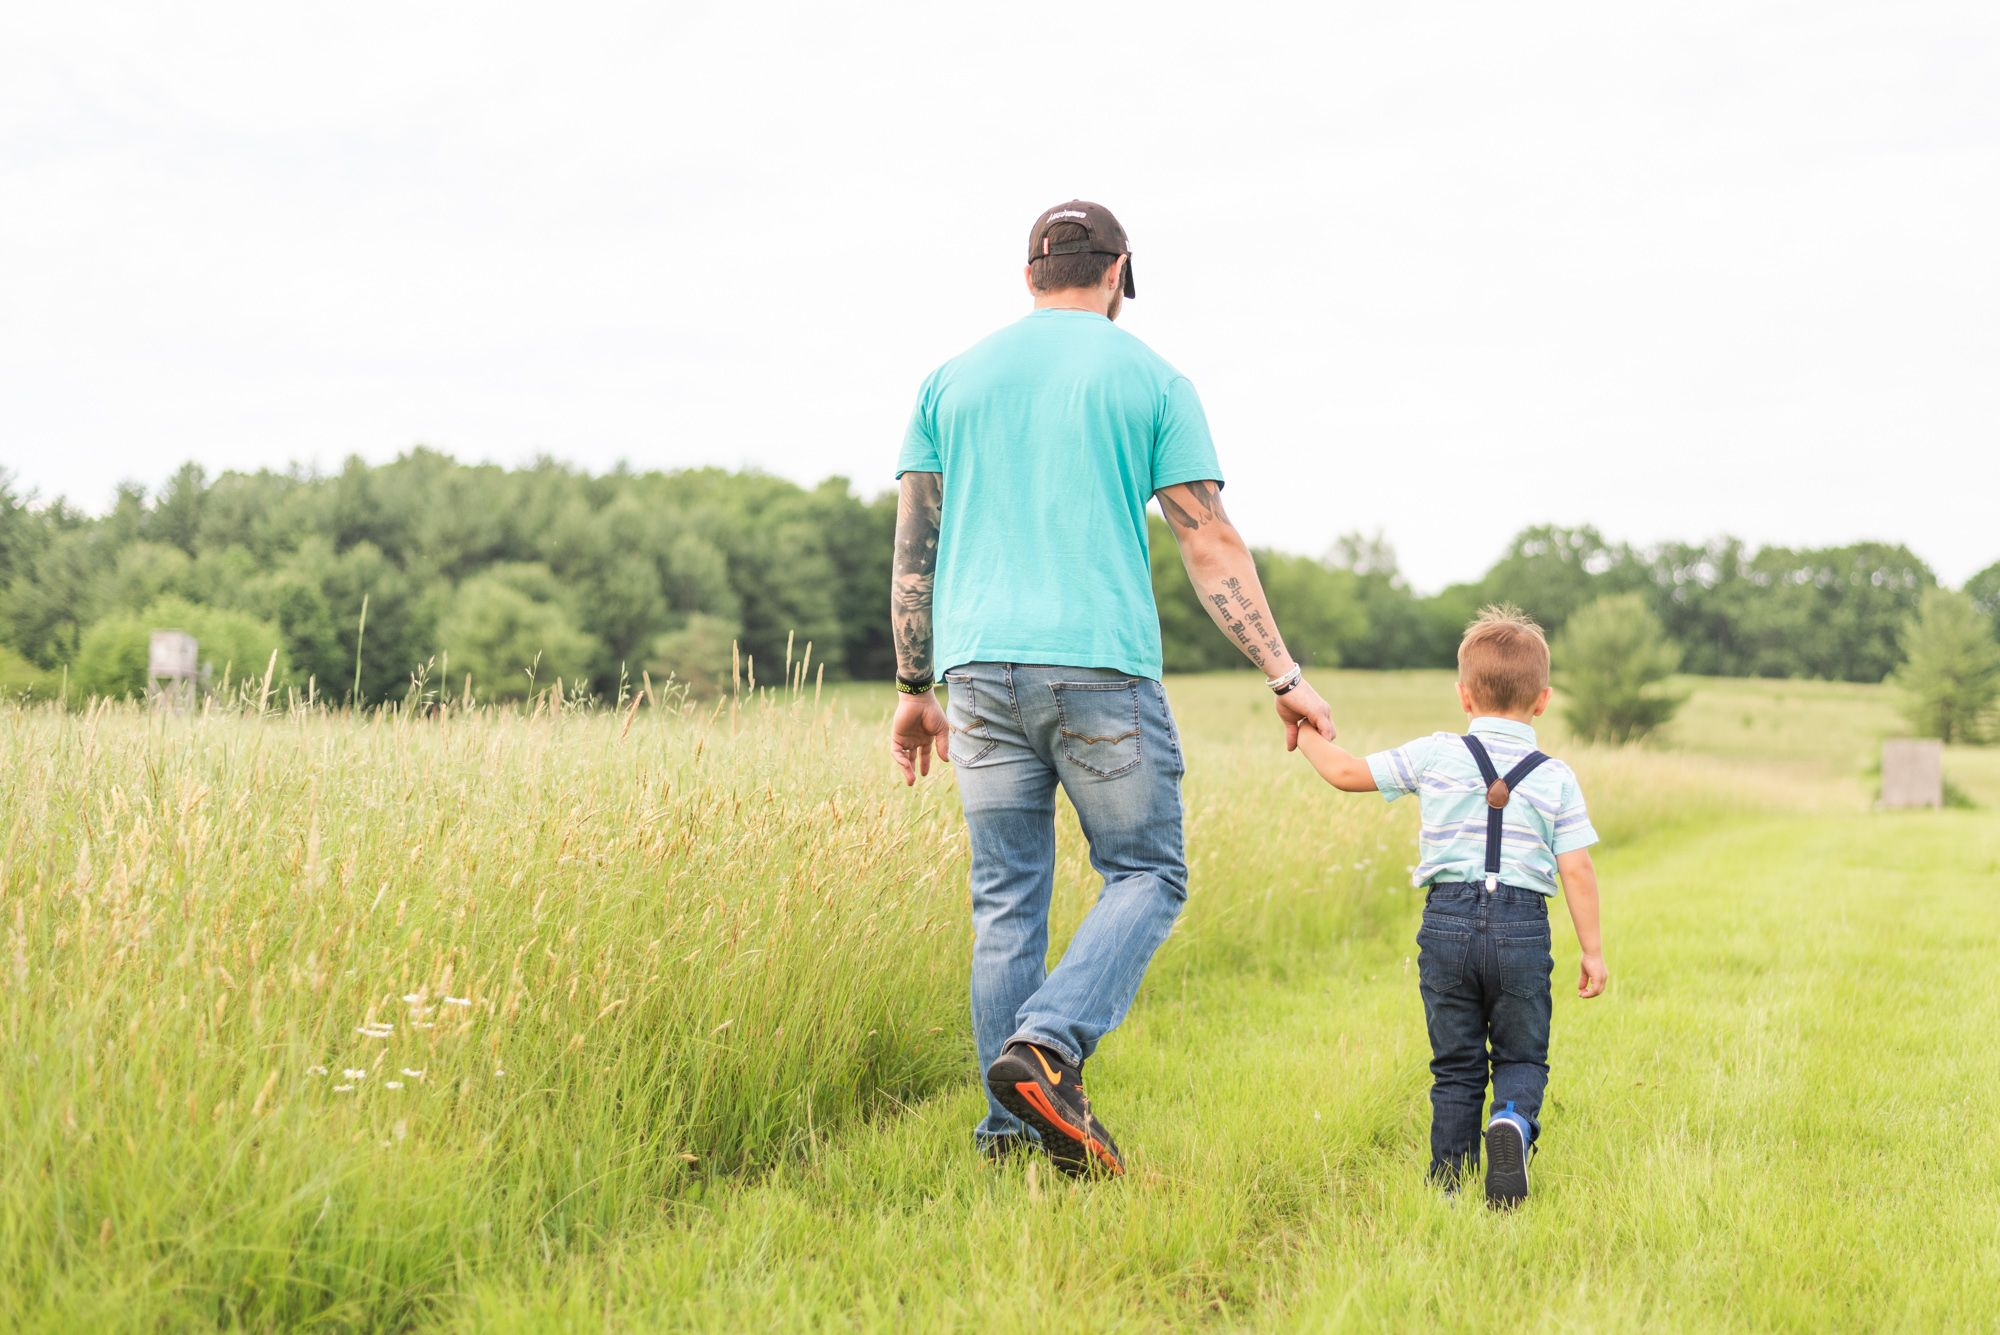 Father and son walking away through field in Clarion Pennsylvania